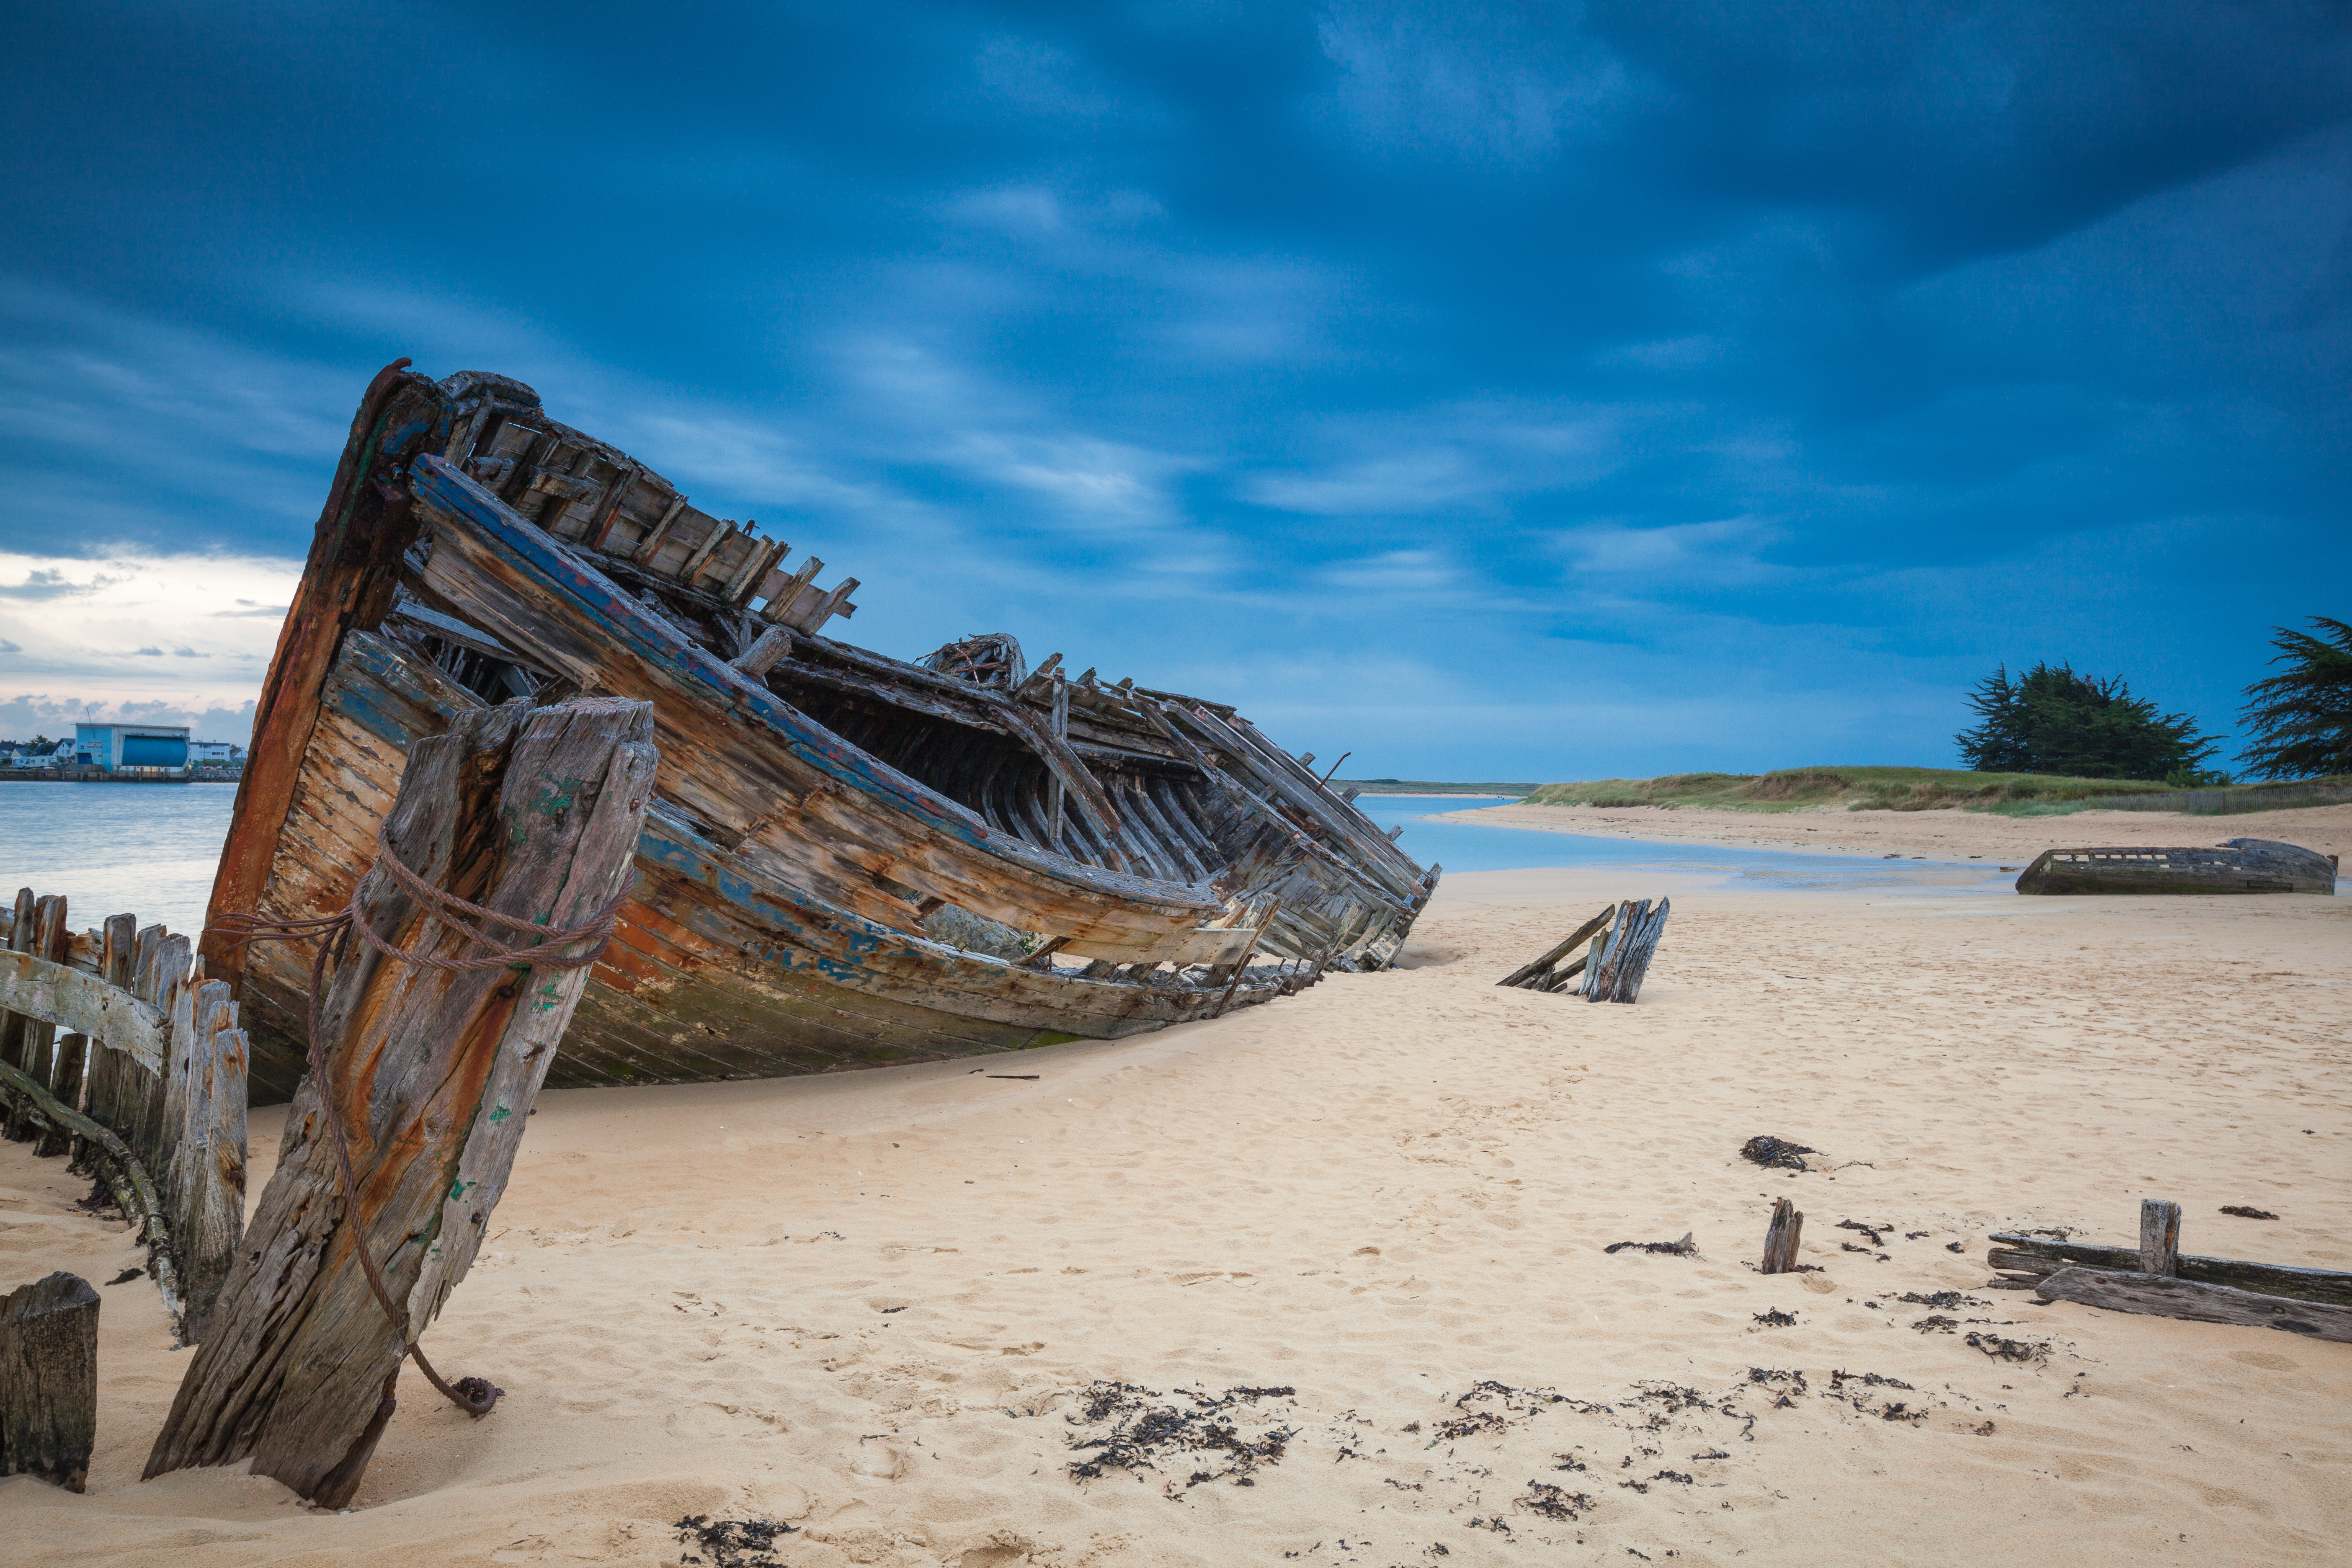 Shipwreck Sites Brought To Life